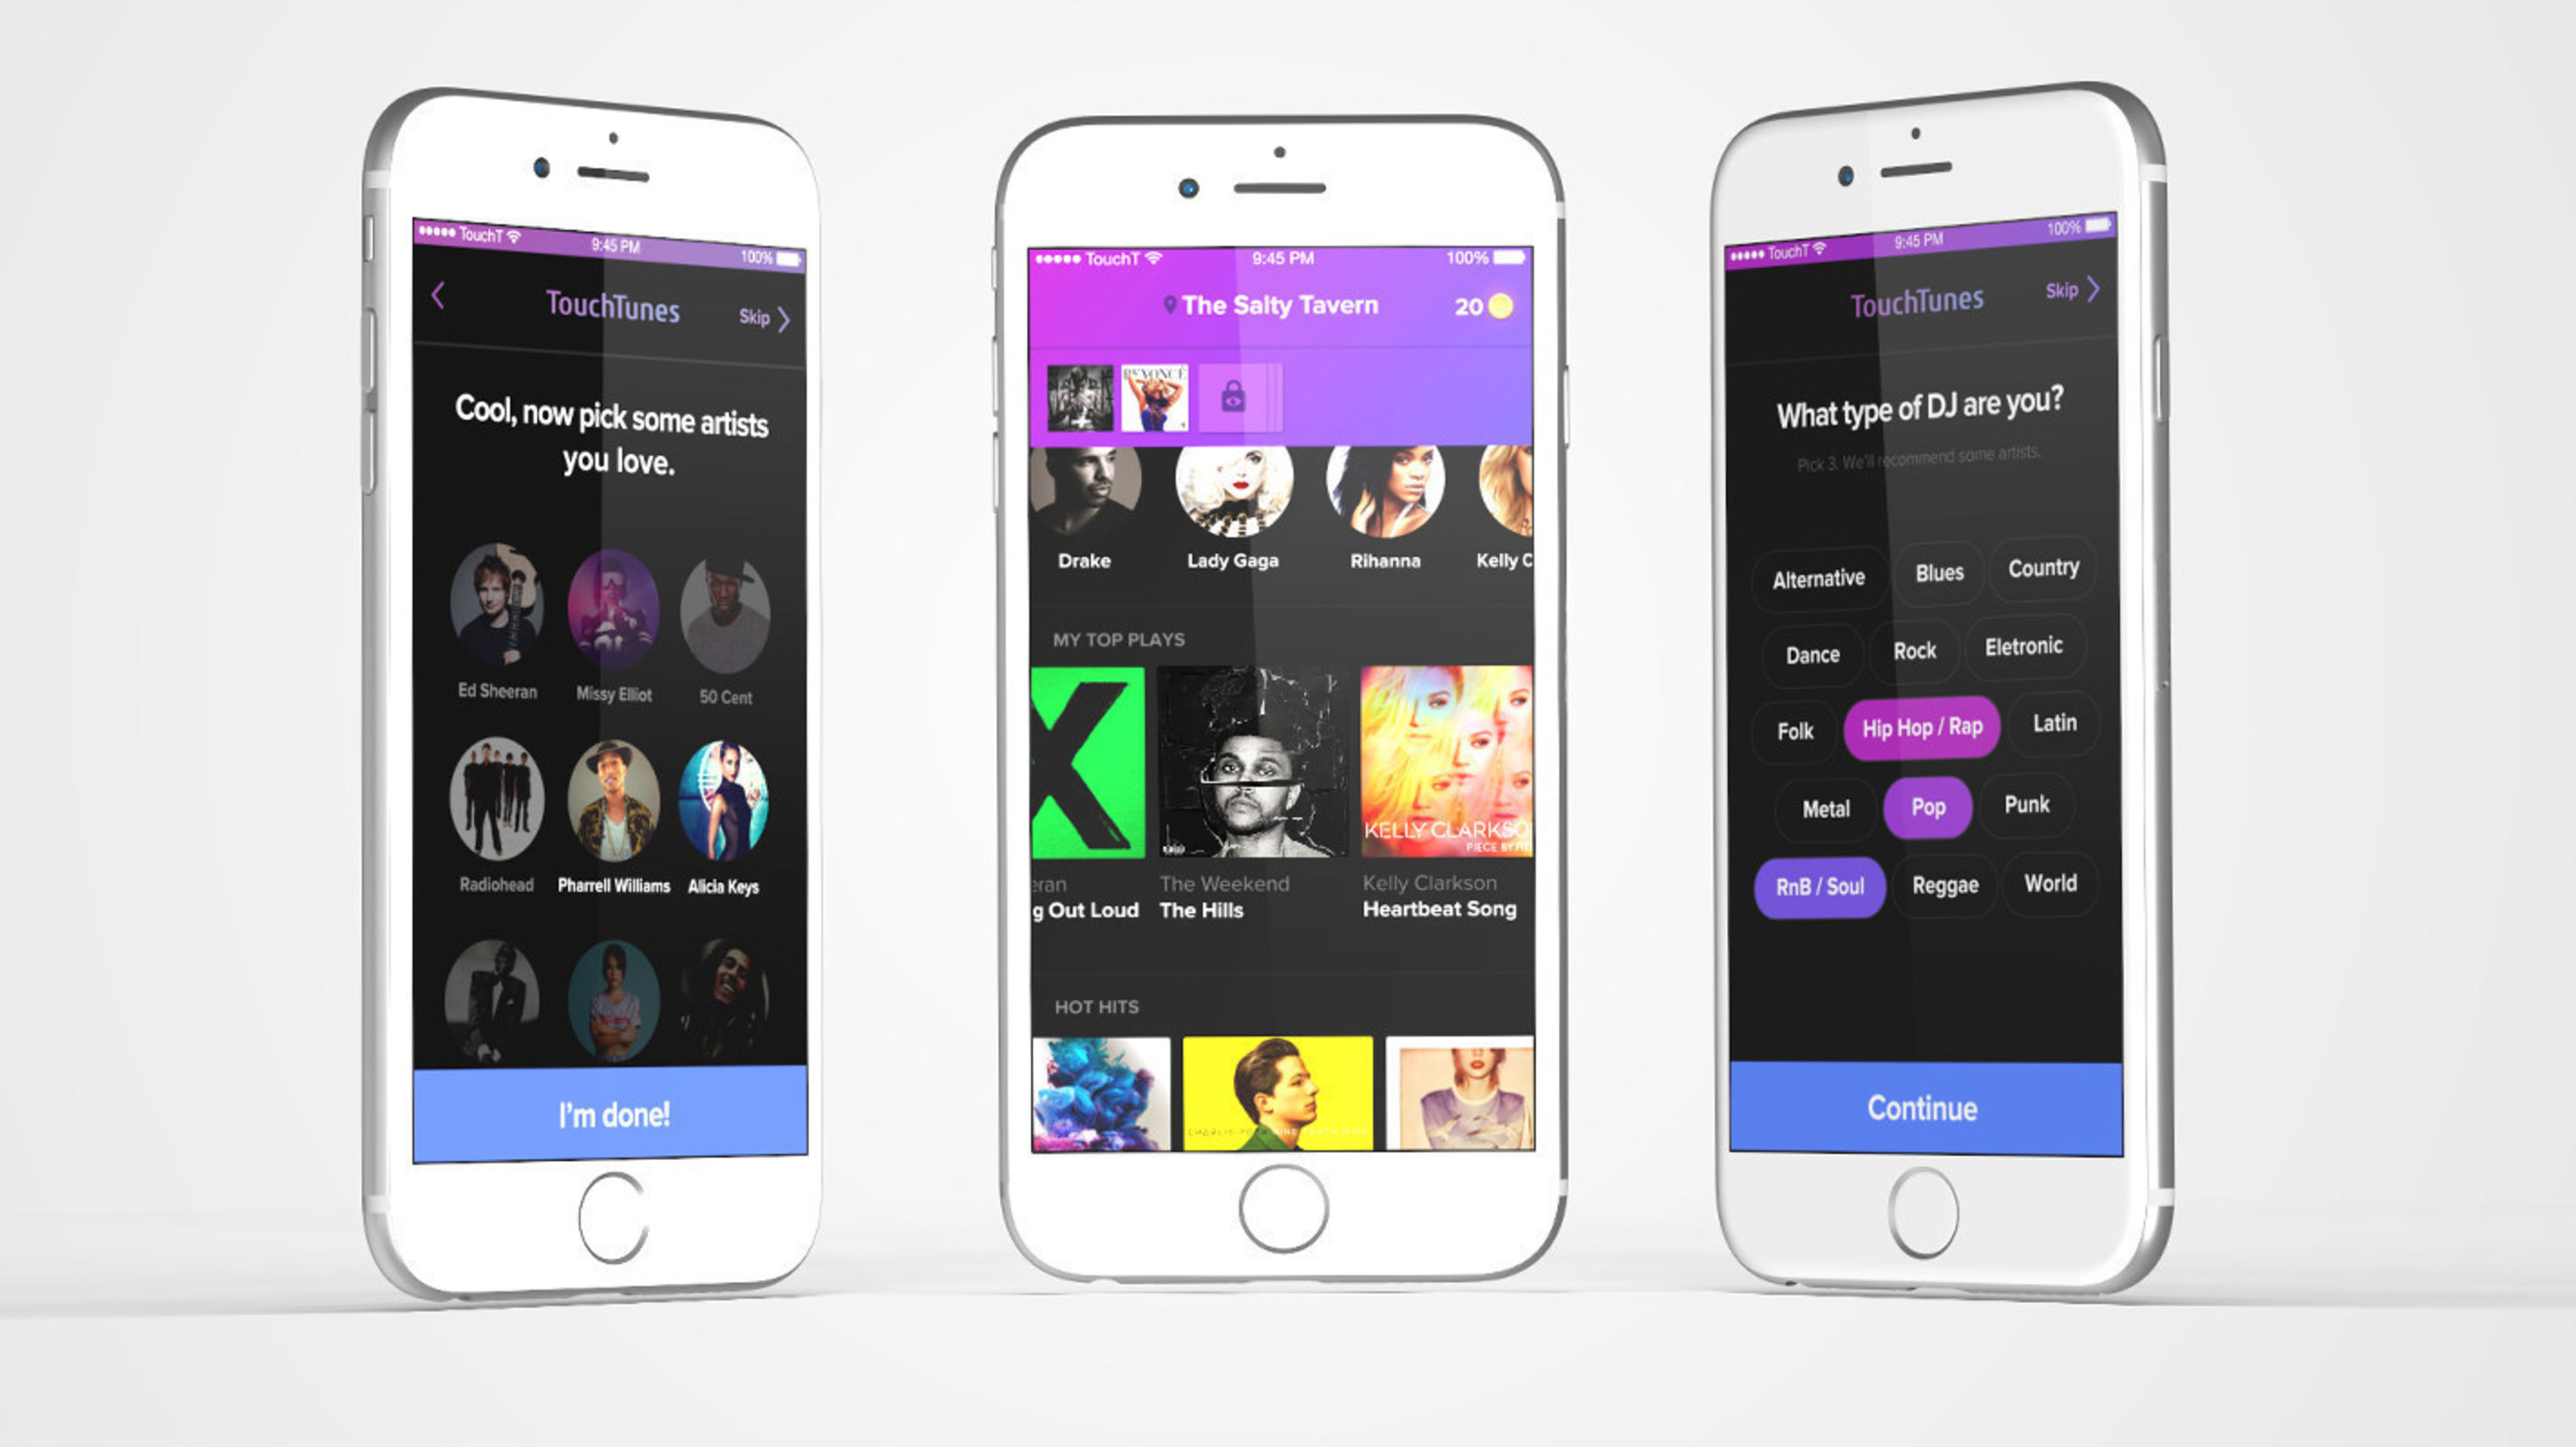 TouchTunes' next generation jukebox app is now available on iOS and Android. Take control of your music experience and be the DJ like never before.